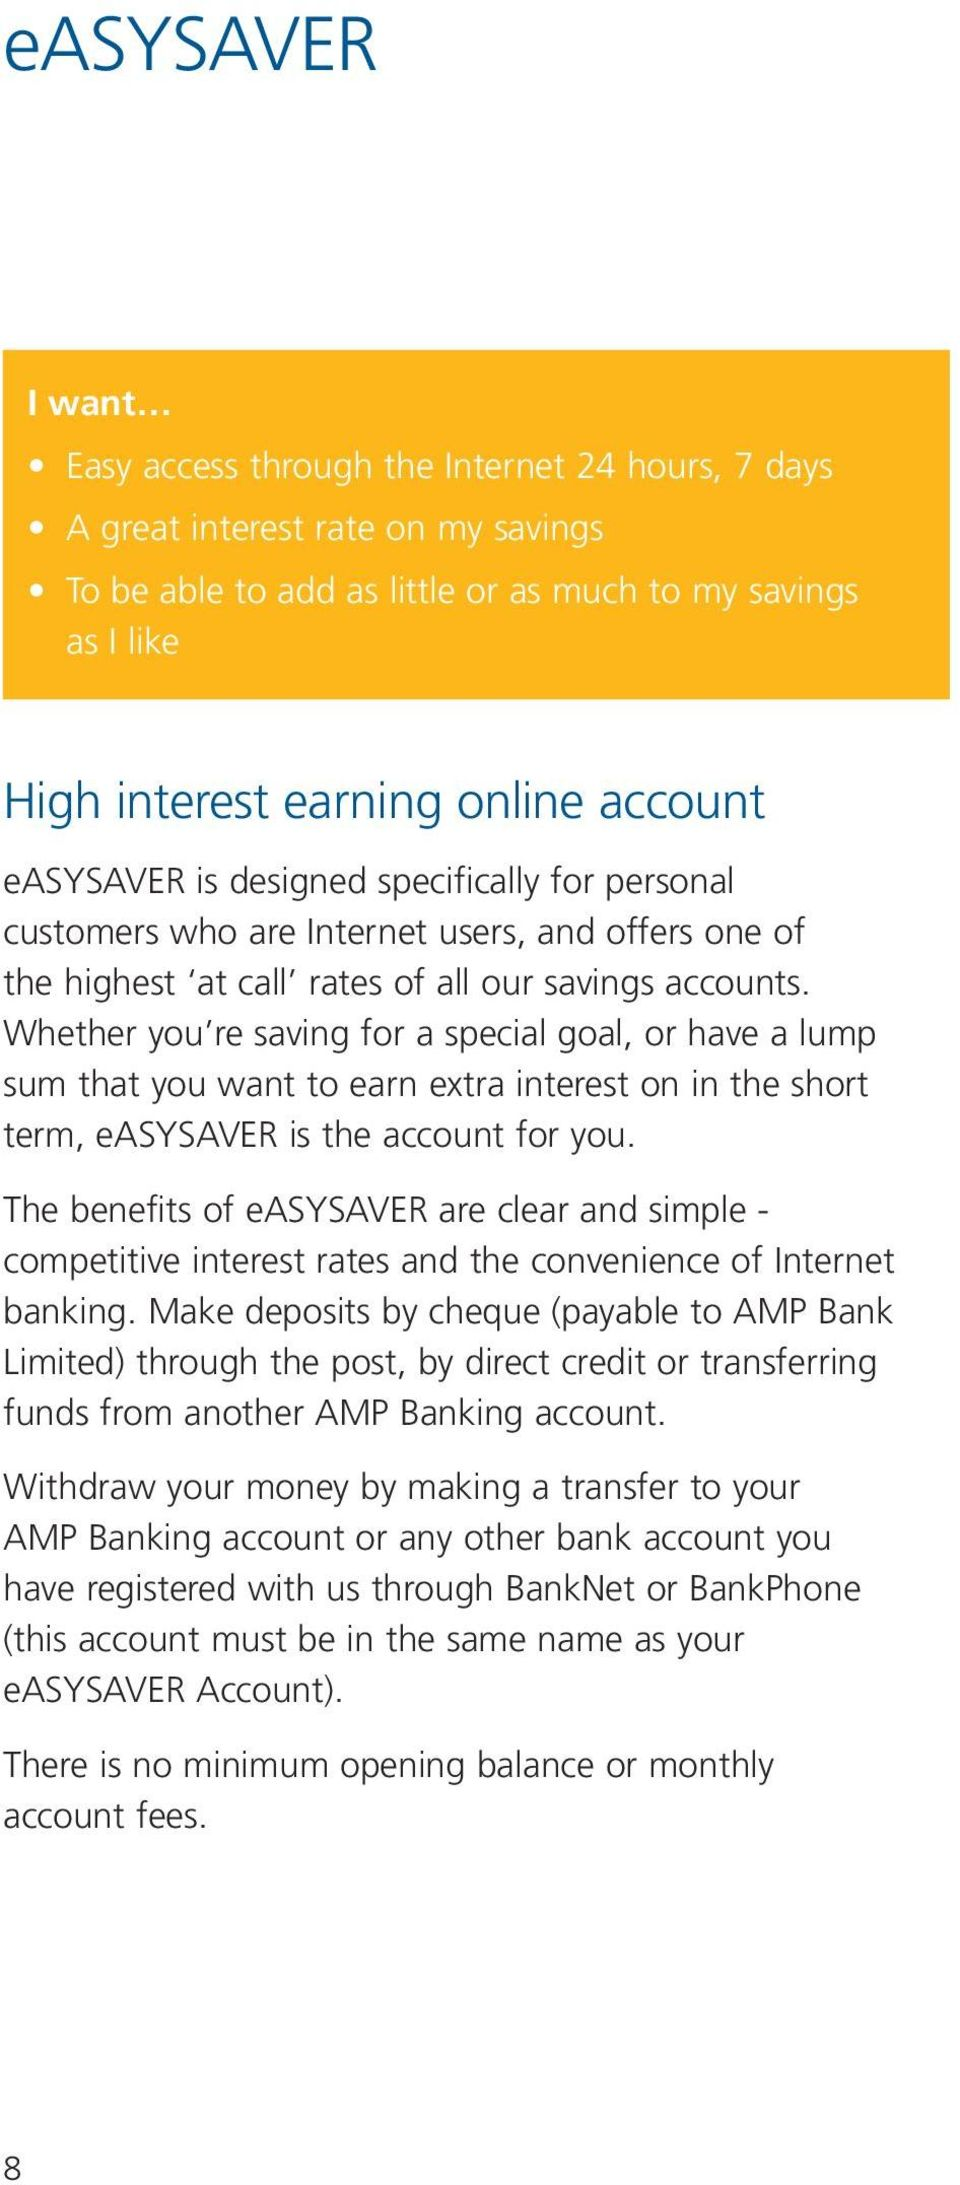 Whether you re saving for a special goal, or have a lump sum that you want to earn extra interest on in the short term, easysaver is the account for you.